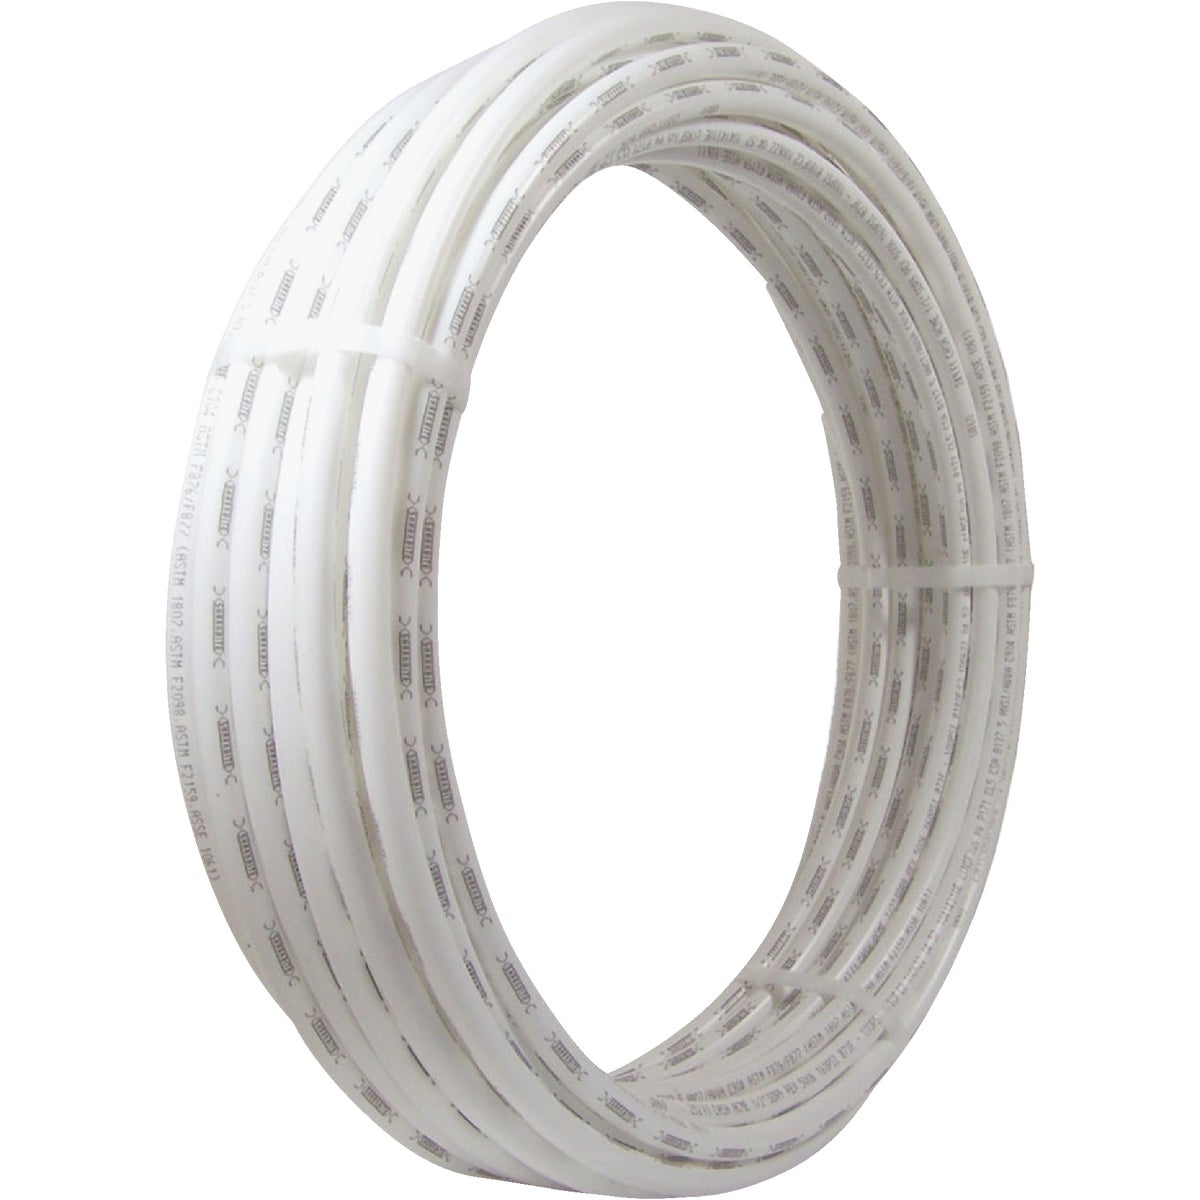 "3/8""X100' WHT PEX TUBING - WPTC06-100W by Watts Regulator Co"